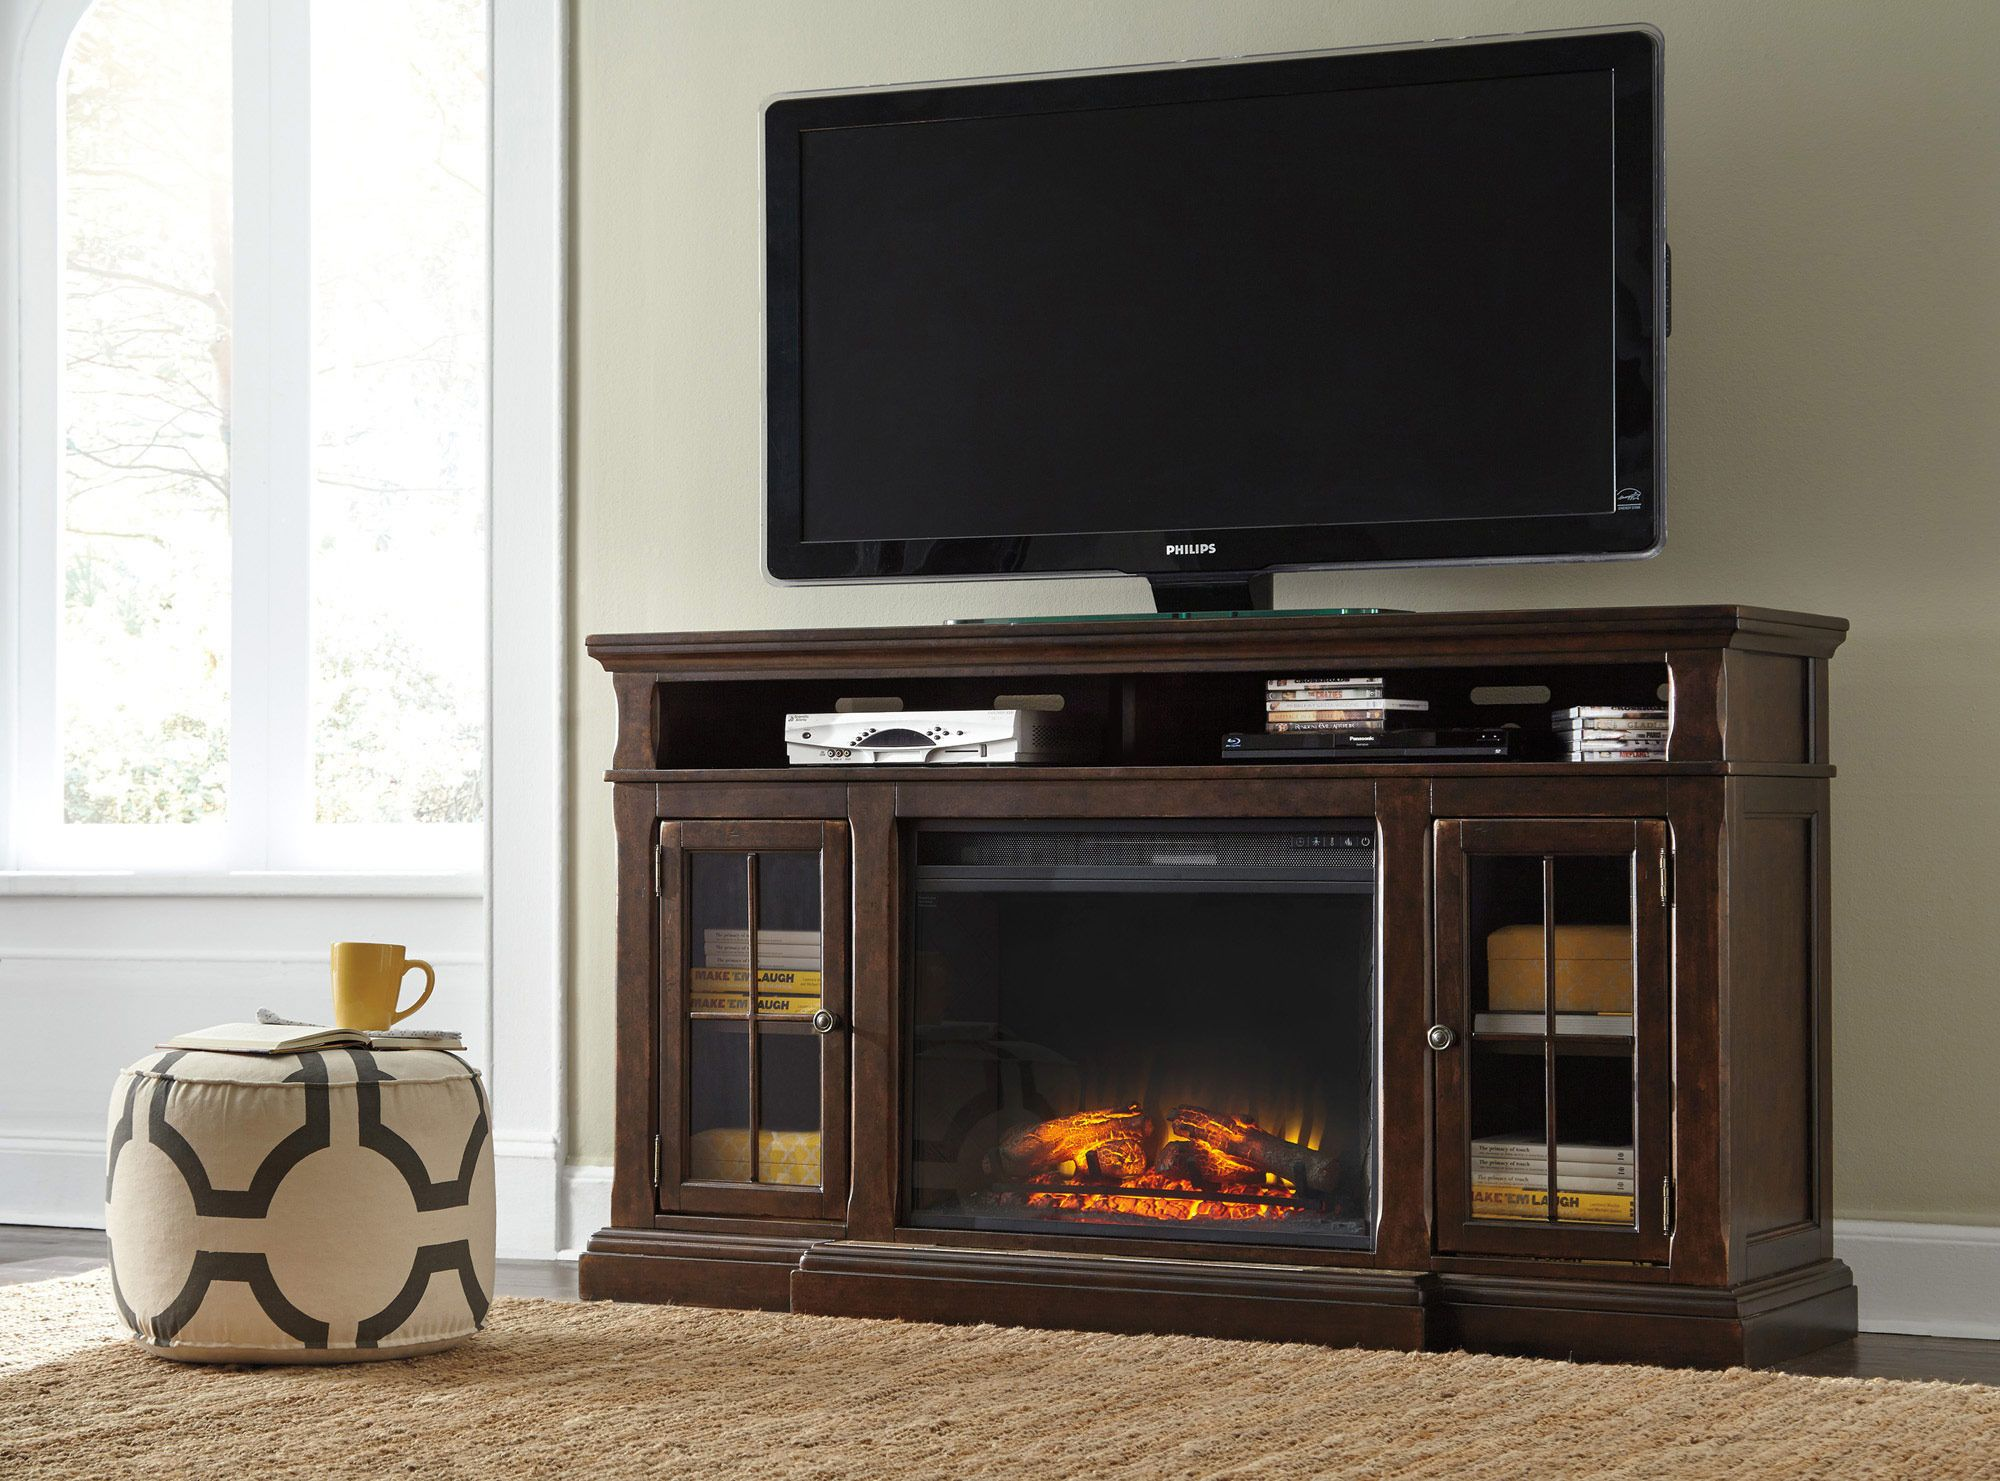 Roddinton Extra Large Tv Stand W Fireplace Option By